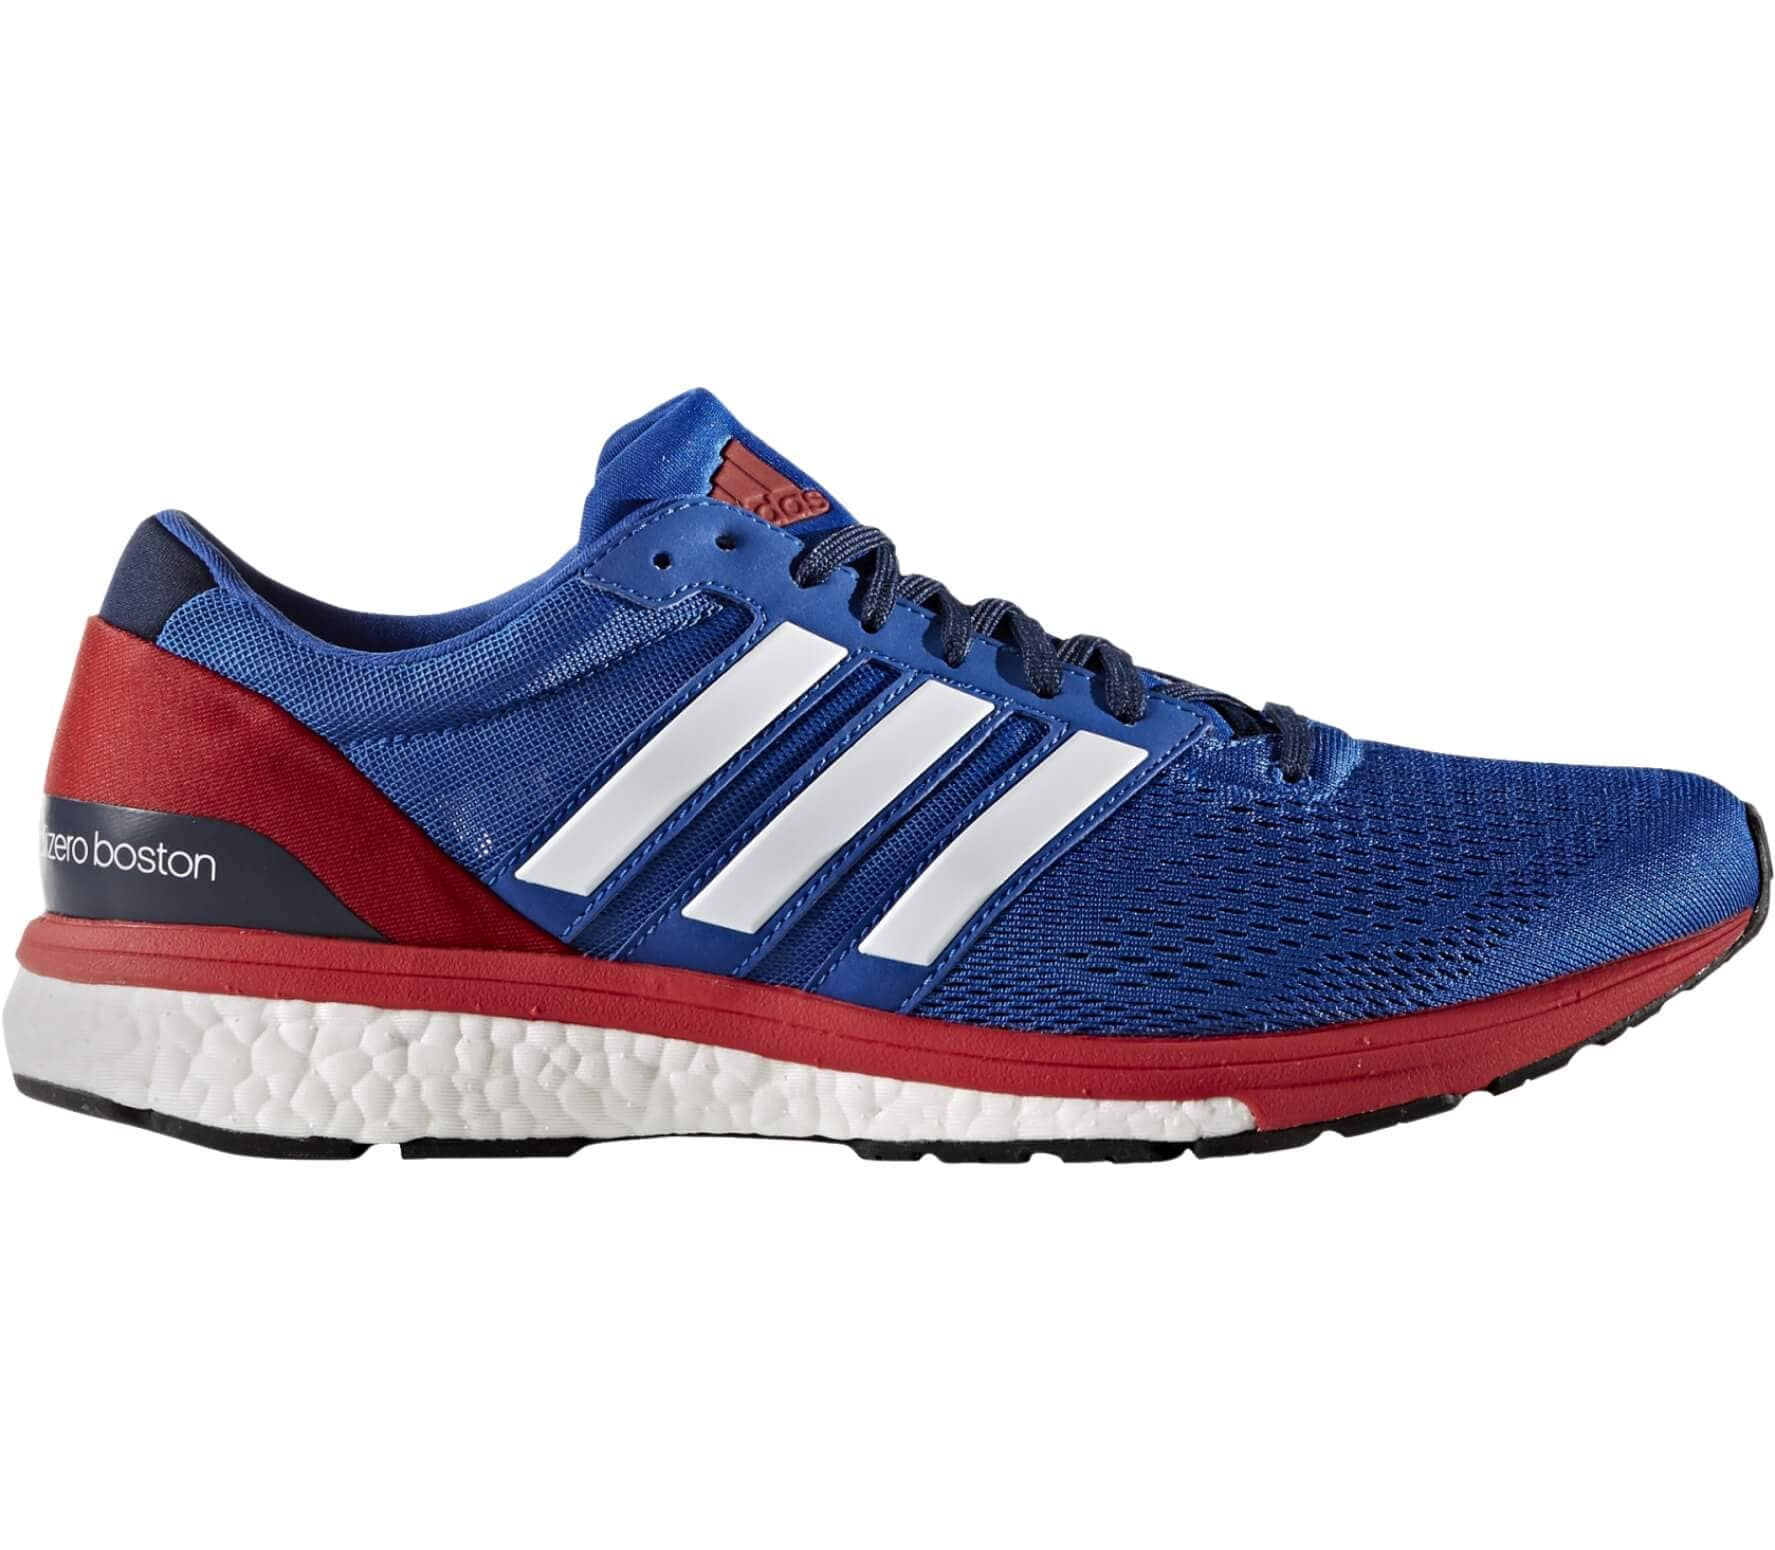 sports shoes b52d5 fd4bb Adidas - Adizero Boston 6 Aktiv zapatillas de running para hombre  (azul blanco)